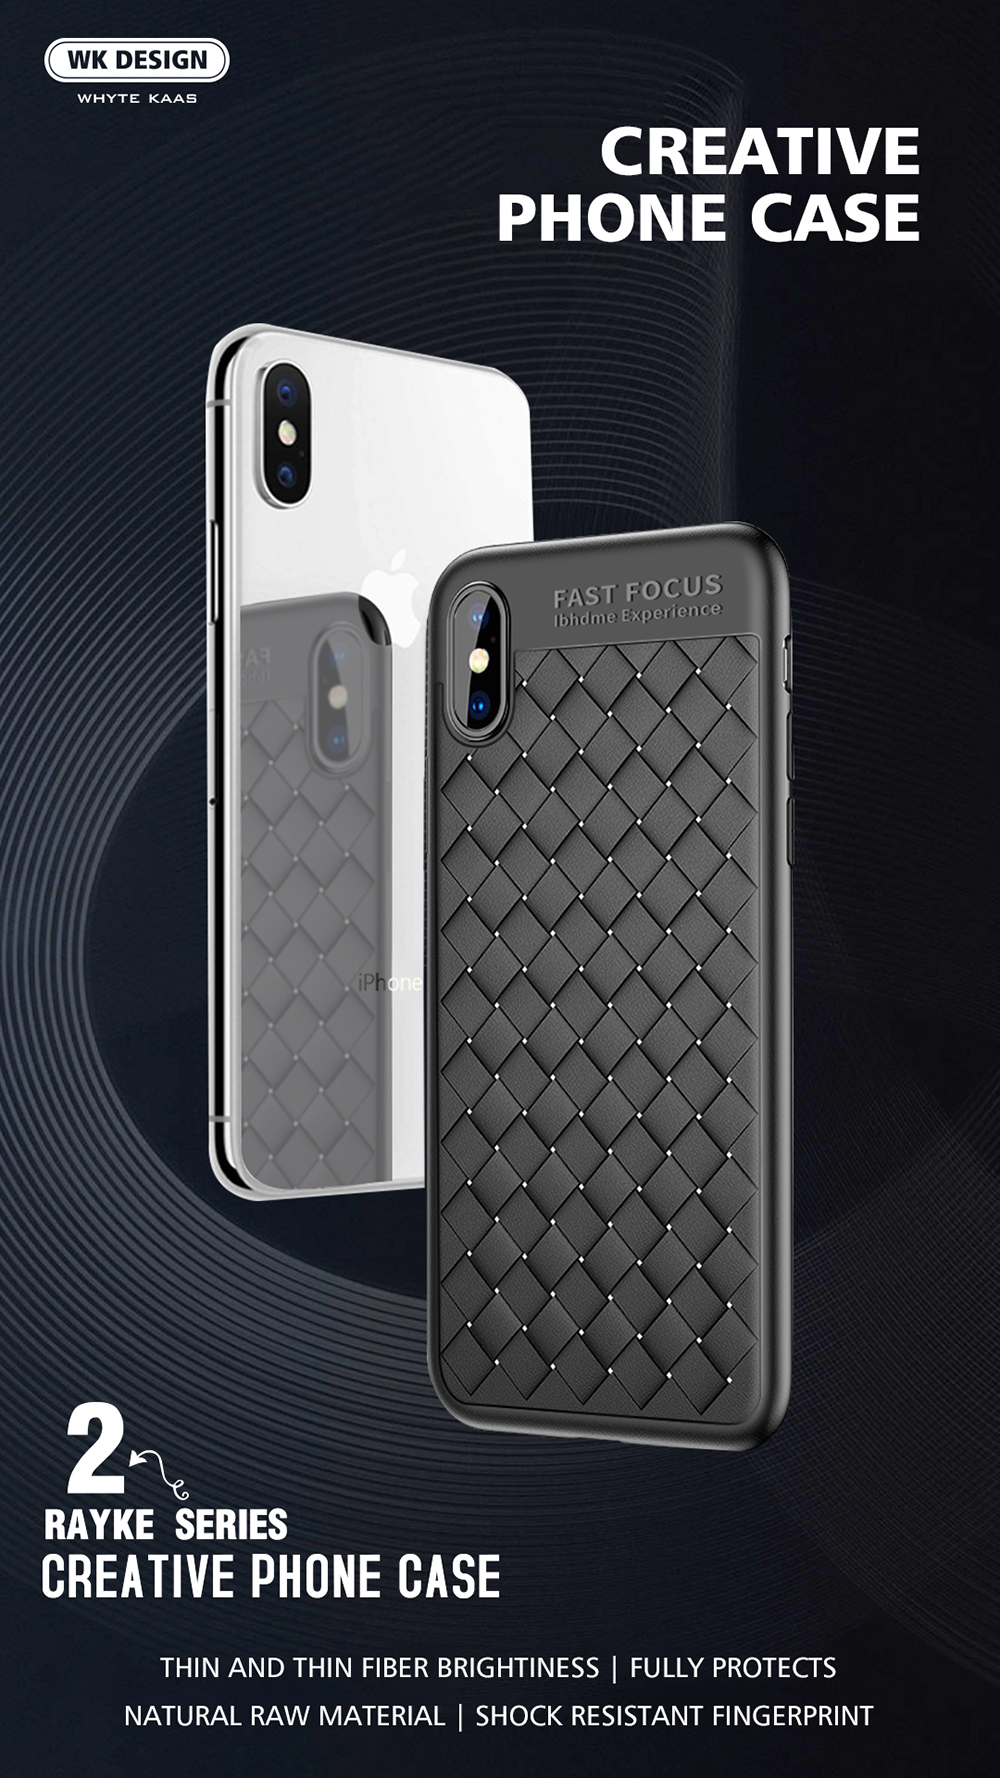 buy online e9011 a865e WK Design Luxury Grid Phone Cases For iPhone X Ultra Thin Soft TPU  Protective Cover Cases For iPhone 7 8 Plus Phone Accessories